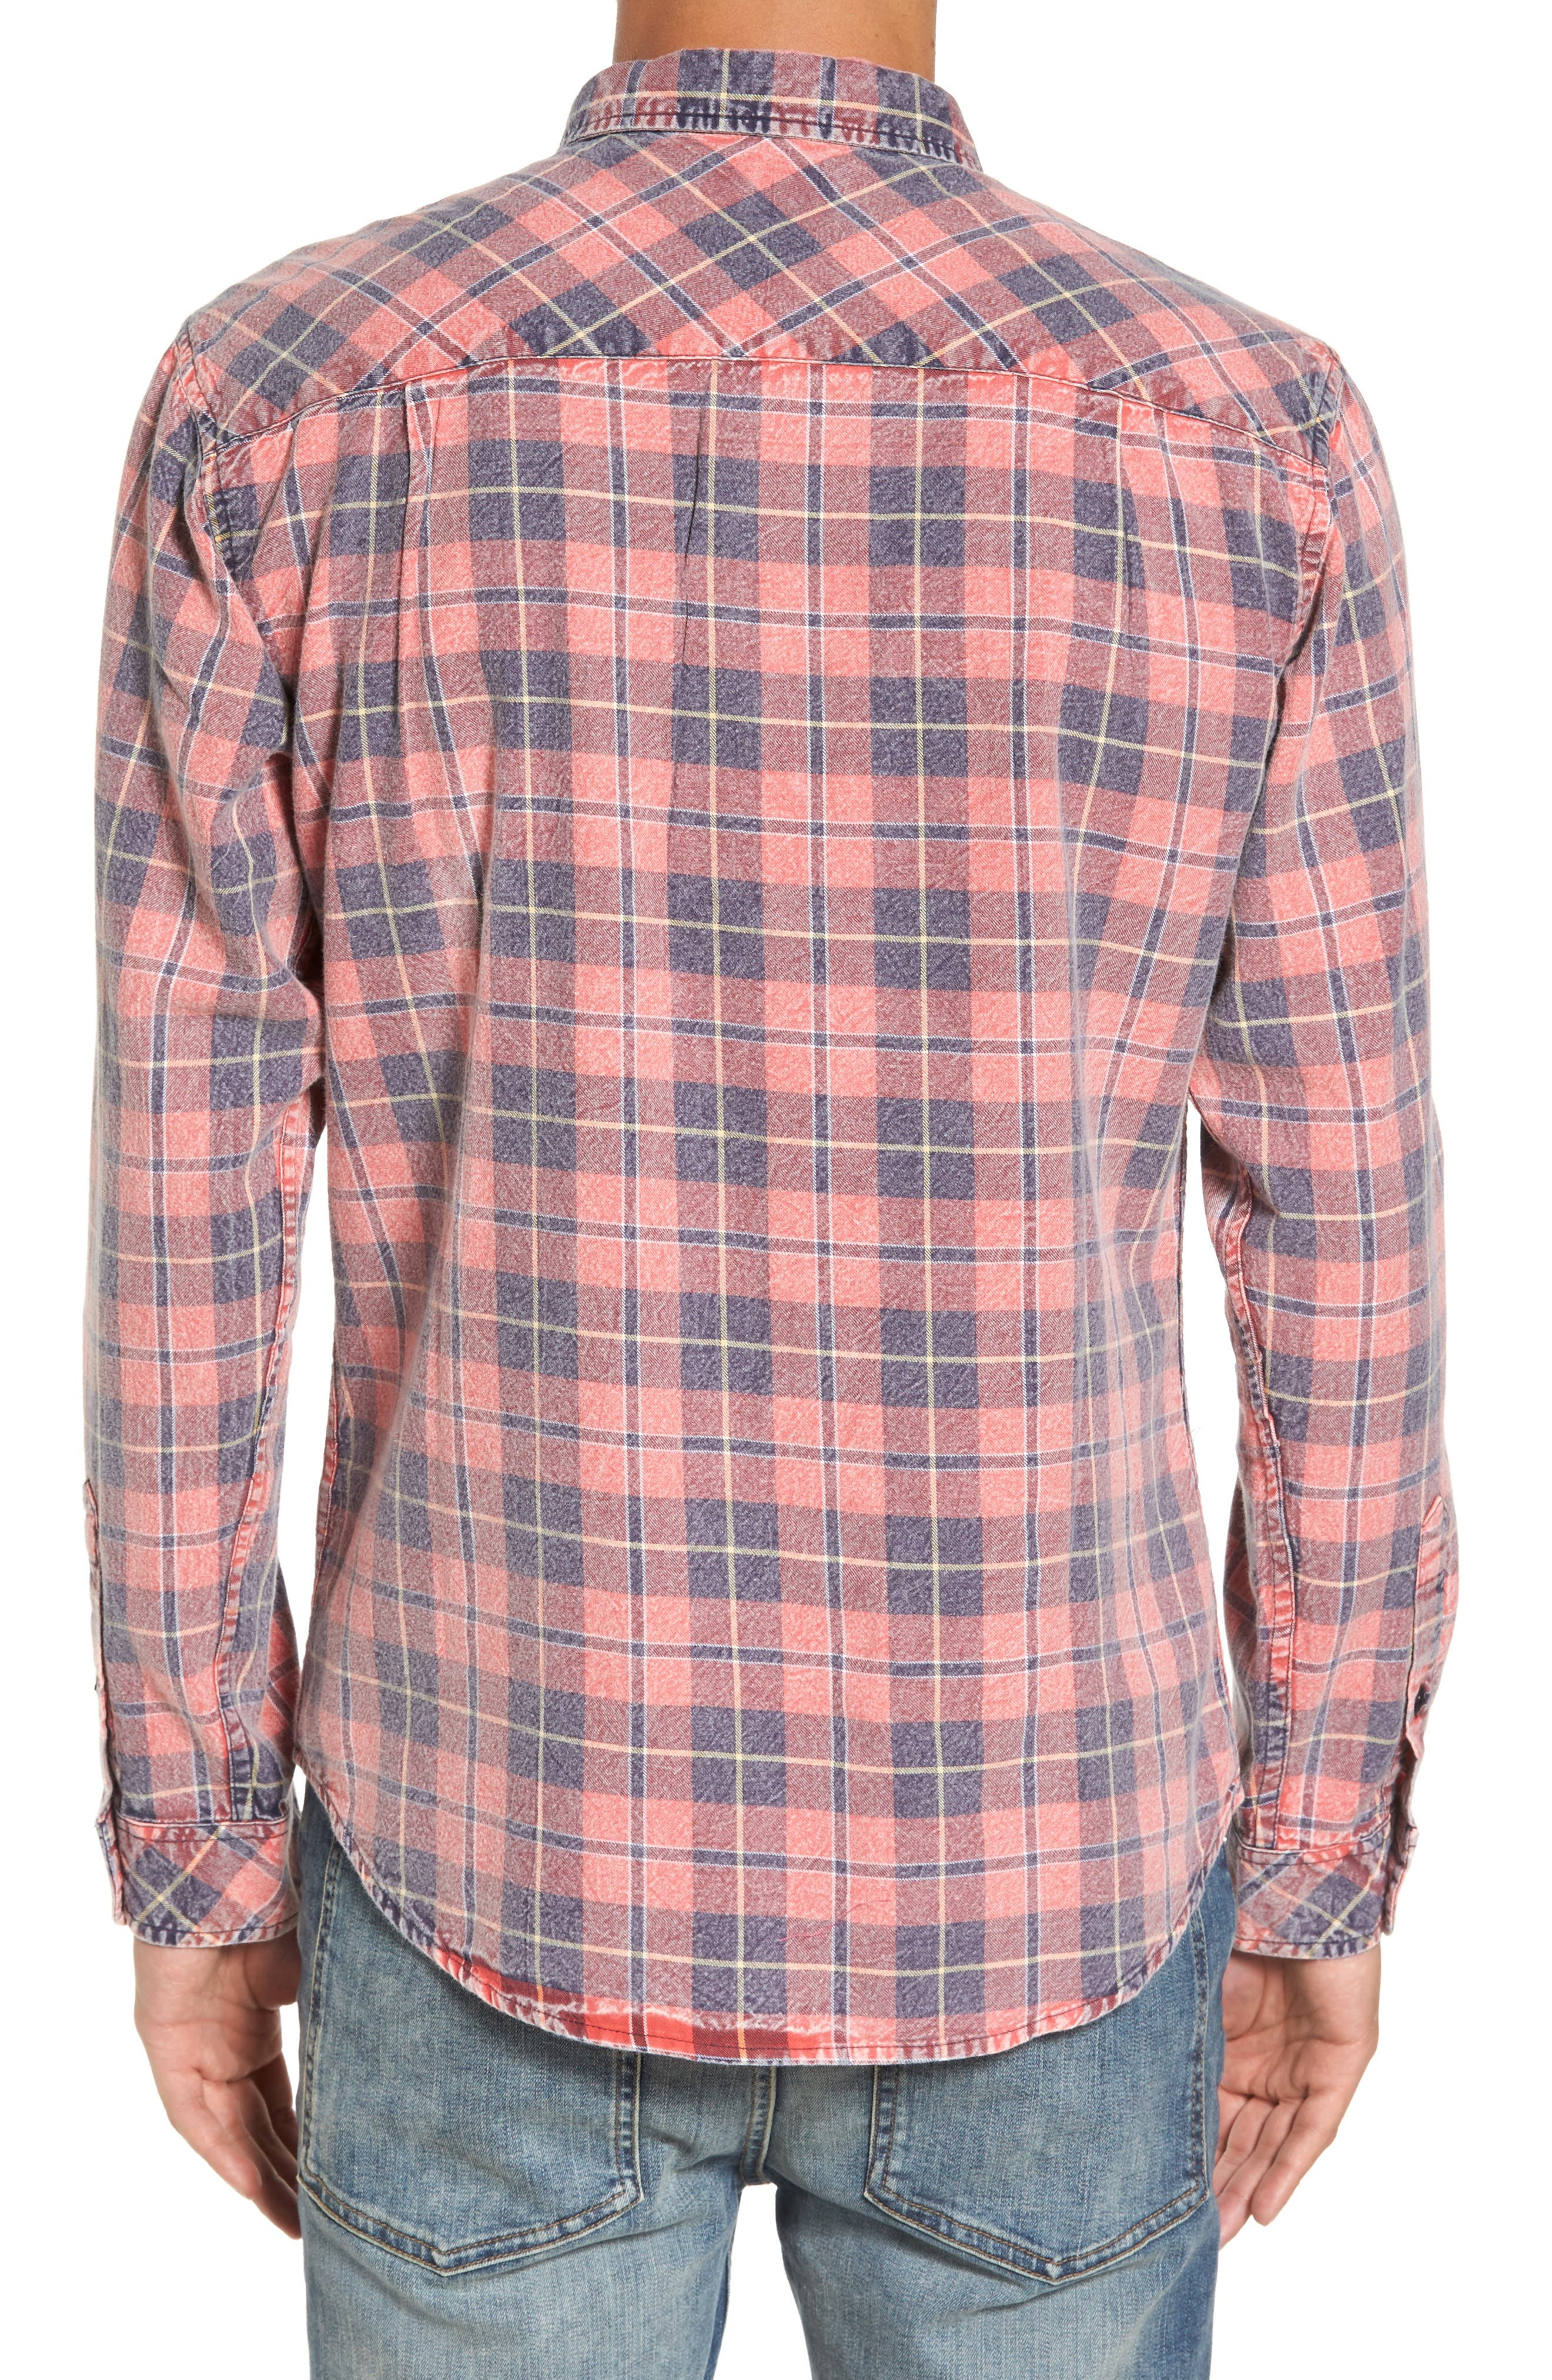 Greenwich Flannel Shirt,                             Alternate thumbnail 2, color,                             Faded Red